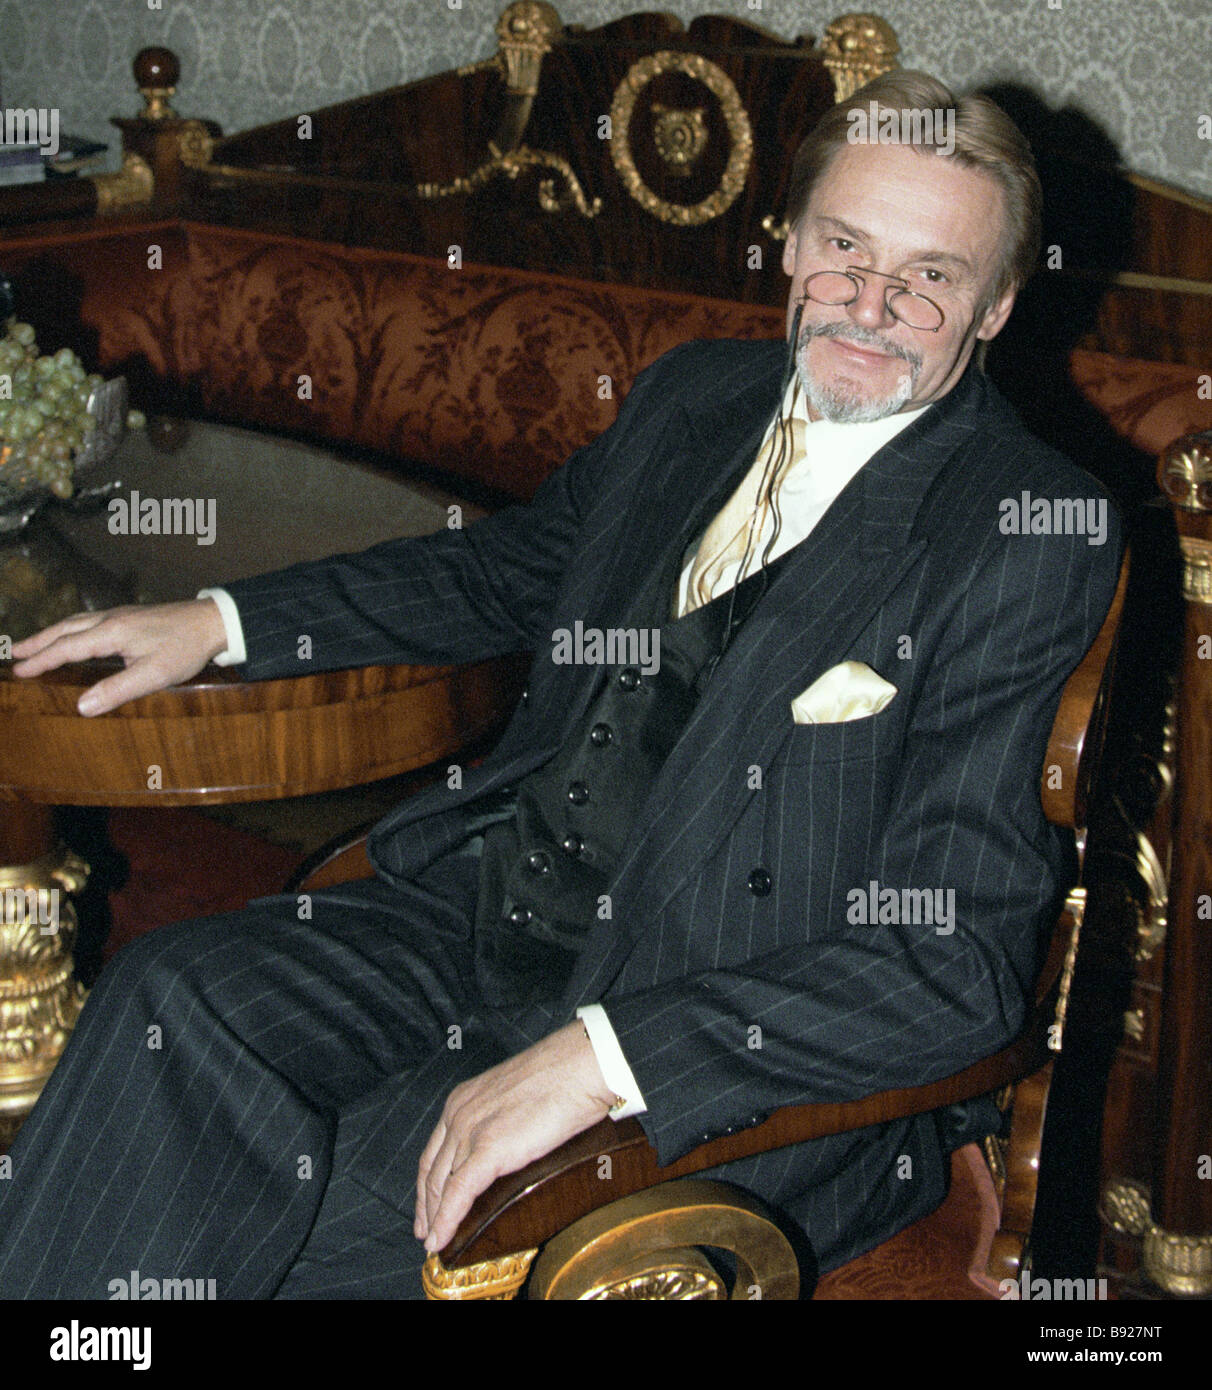 The artistic director of the Bolshoi Theater Sergey Filin told about his version of the attack on him. 01.22.2013 69